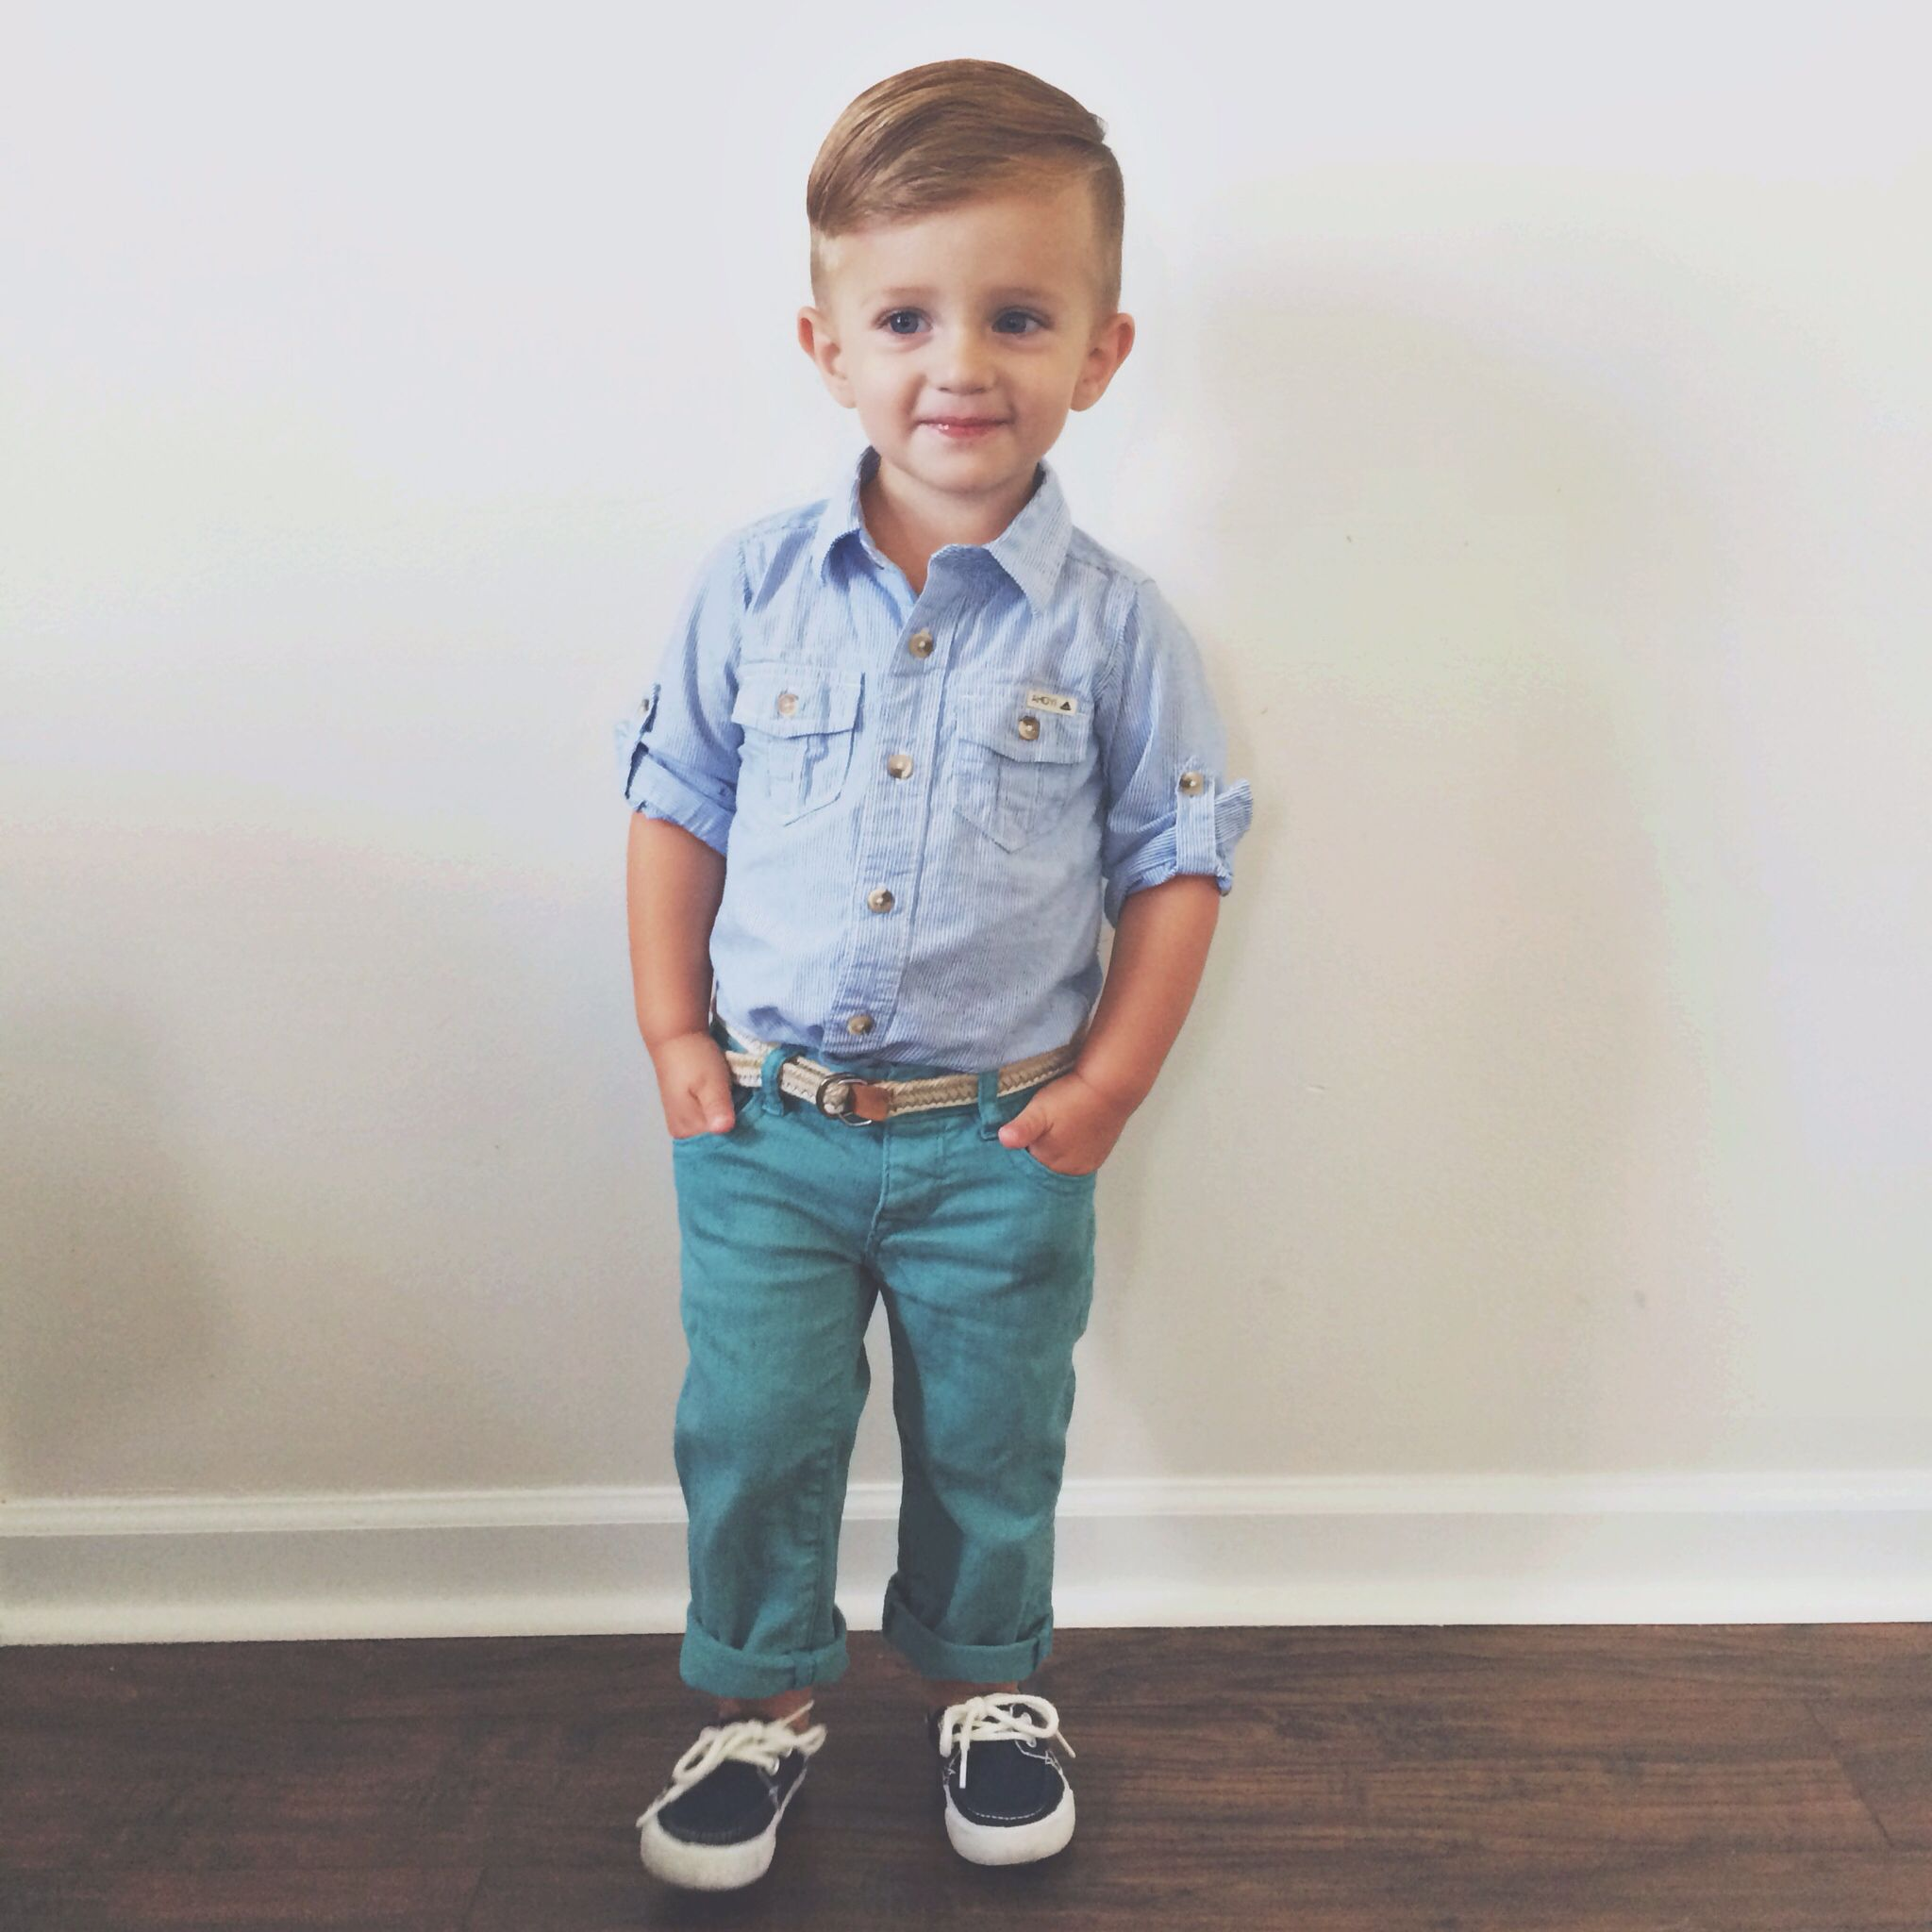 Baby Boy Fashion Via Sarahknuth On Instagram Grant Pinterest Baby Boy Fashion Colored